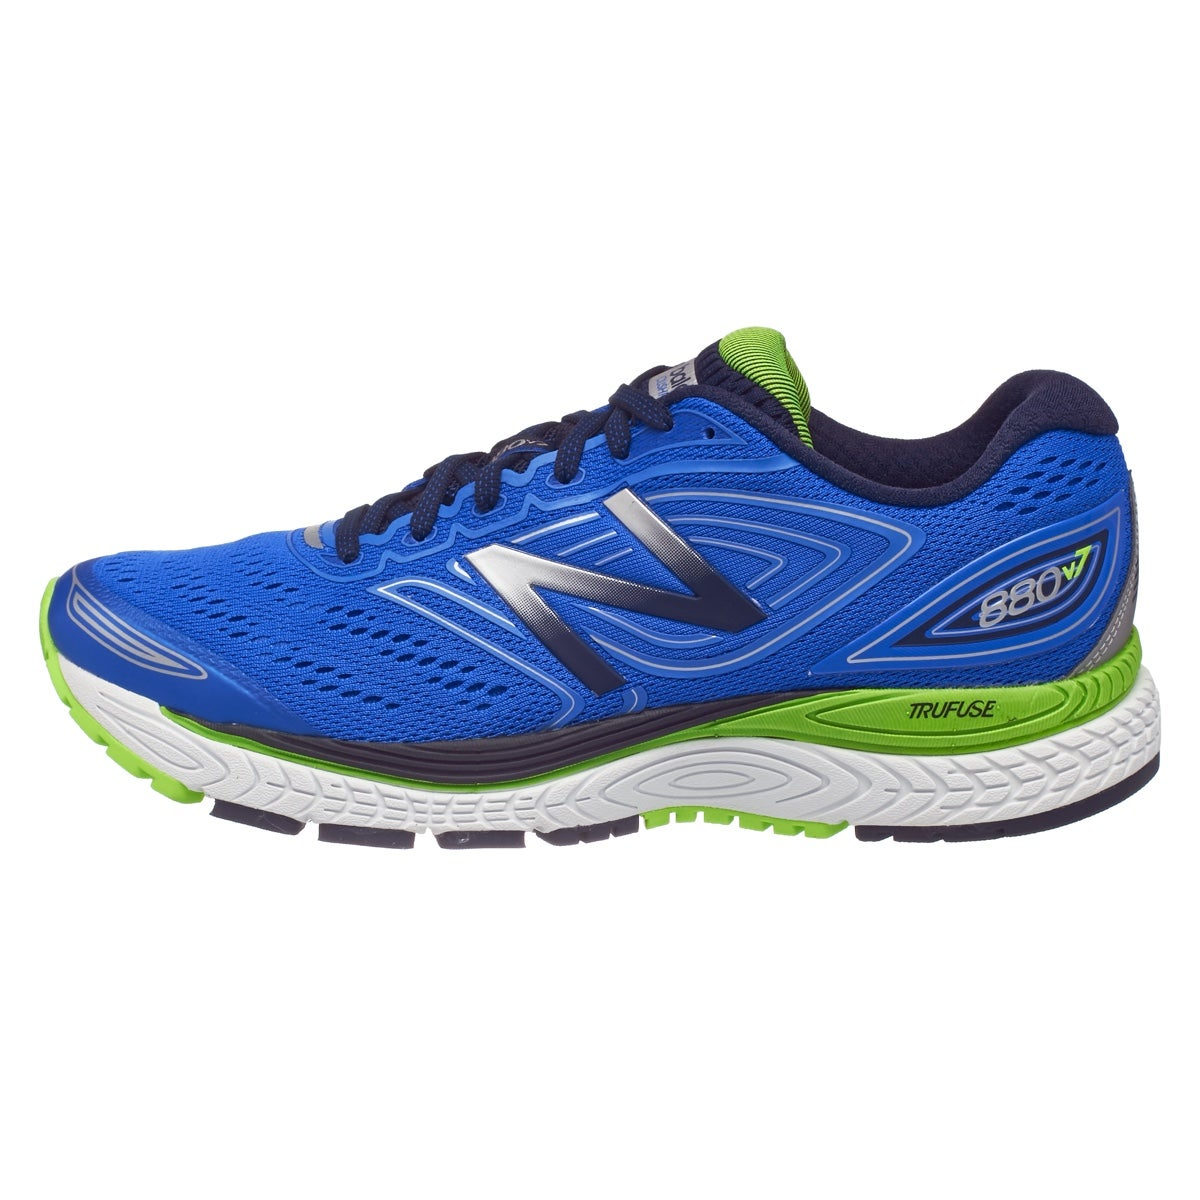 Online shopping from a great selection at Running Warehouse Store.